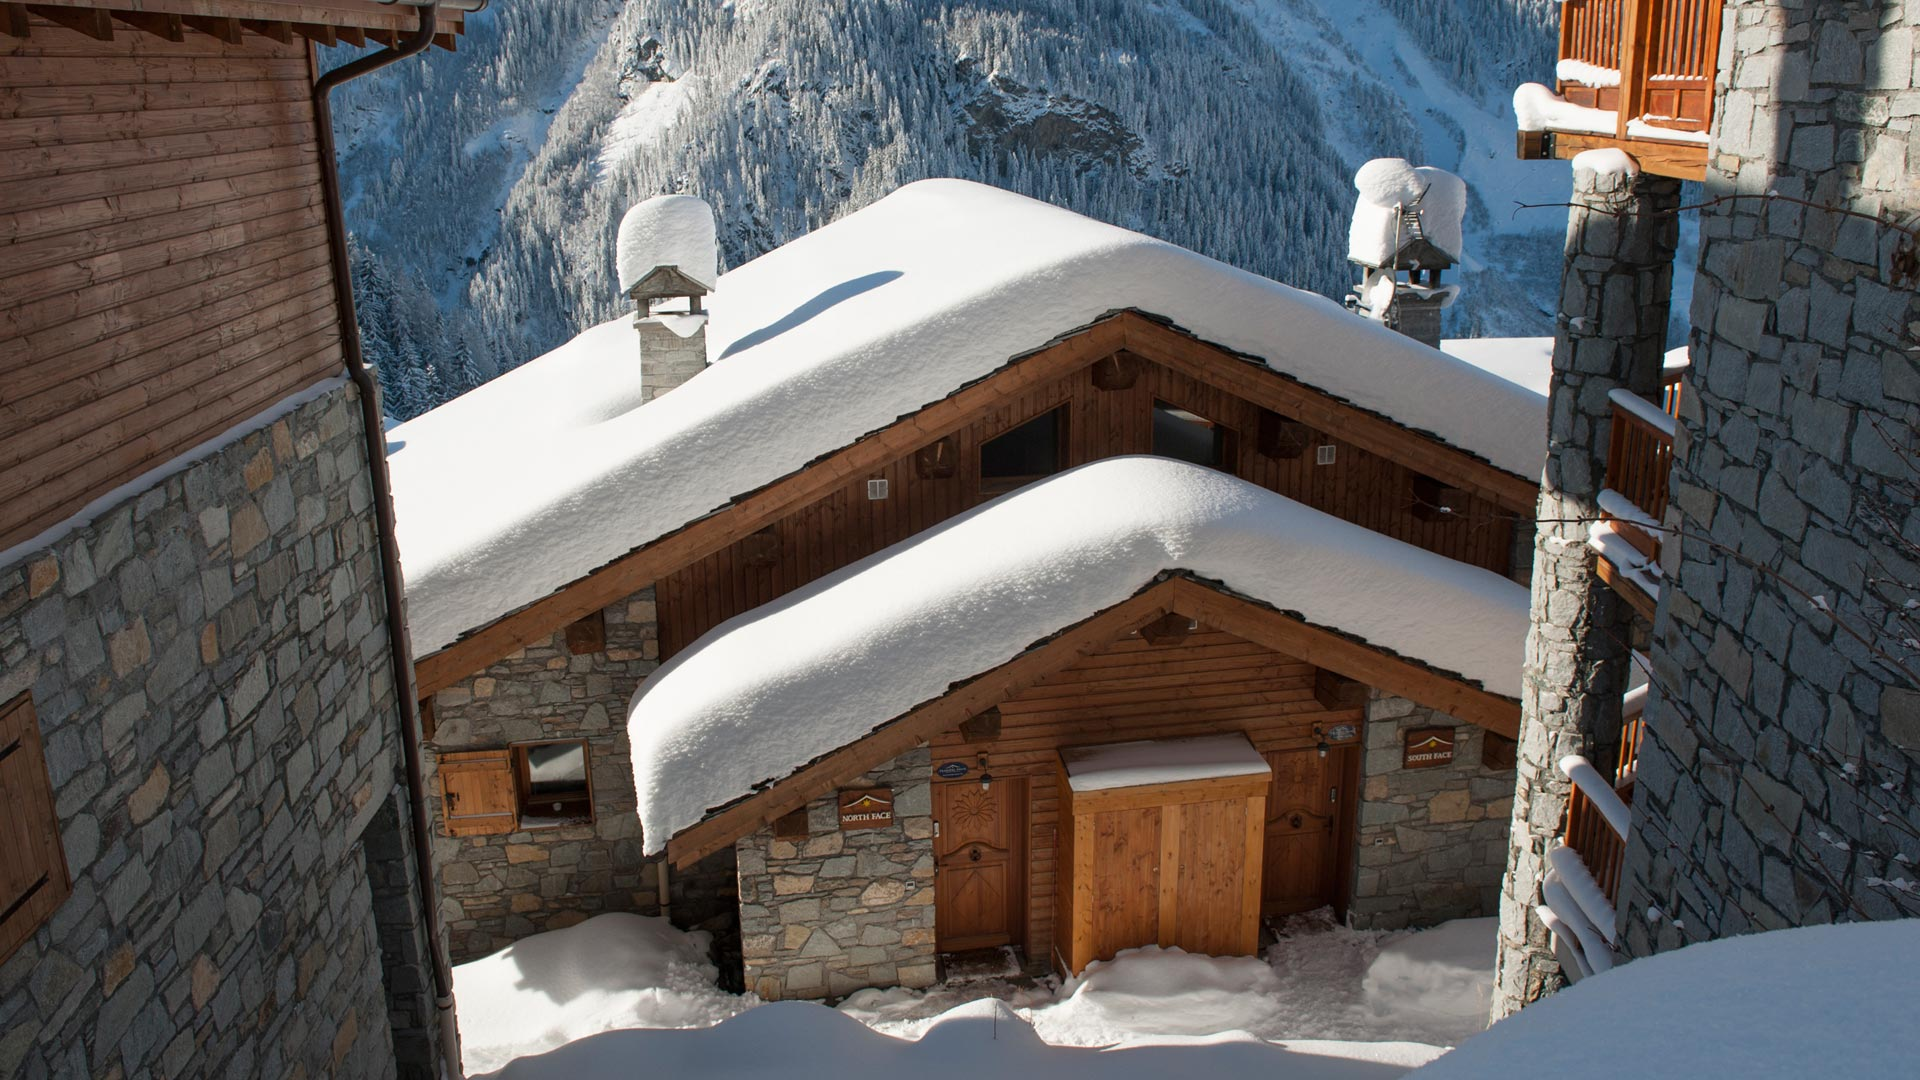 The South Face Chalet in Ste Foy